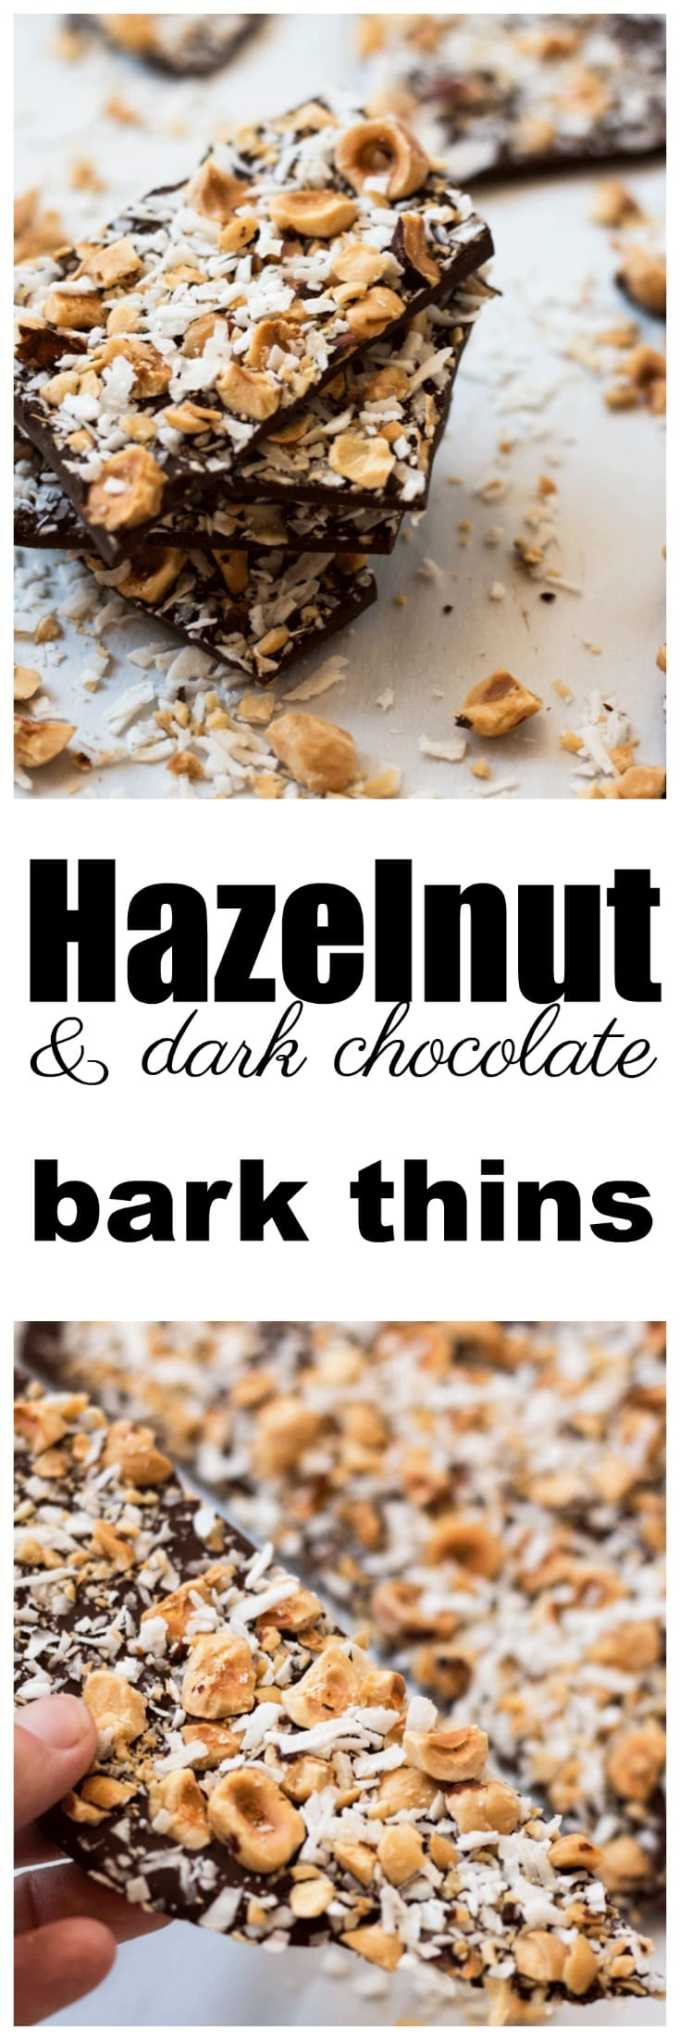 Make snack time more decadent with this Homemade Hazelnut and Dark Chocolate Bark Thins recipe. Combine perfectly toasted hazelnuts and shredded coconut with the highest quality dark chocolate and you have yourself a delightful treat to enjoy anytime. It provides a not too sweet energizing boost of antioxidants as well as some healthy fats to fuel your day.